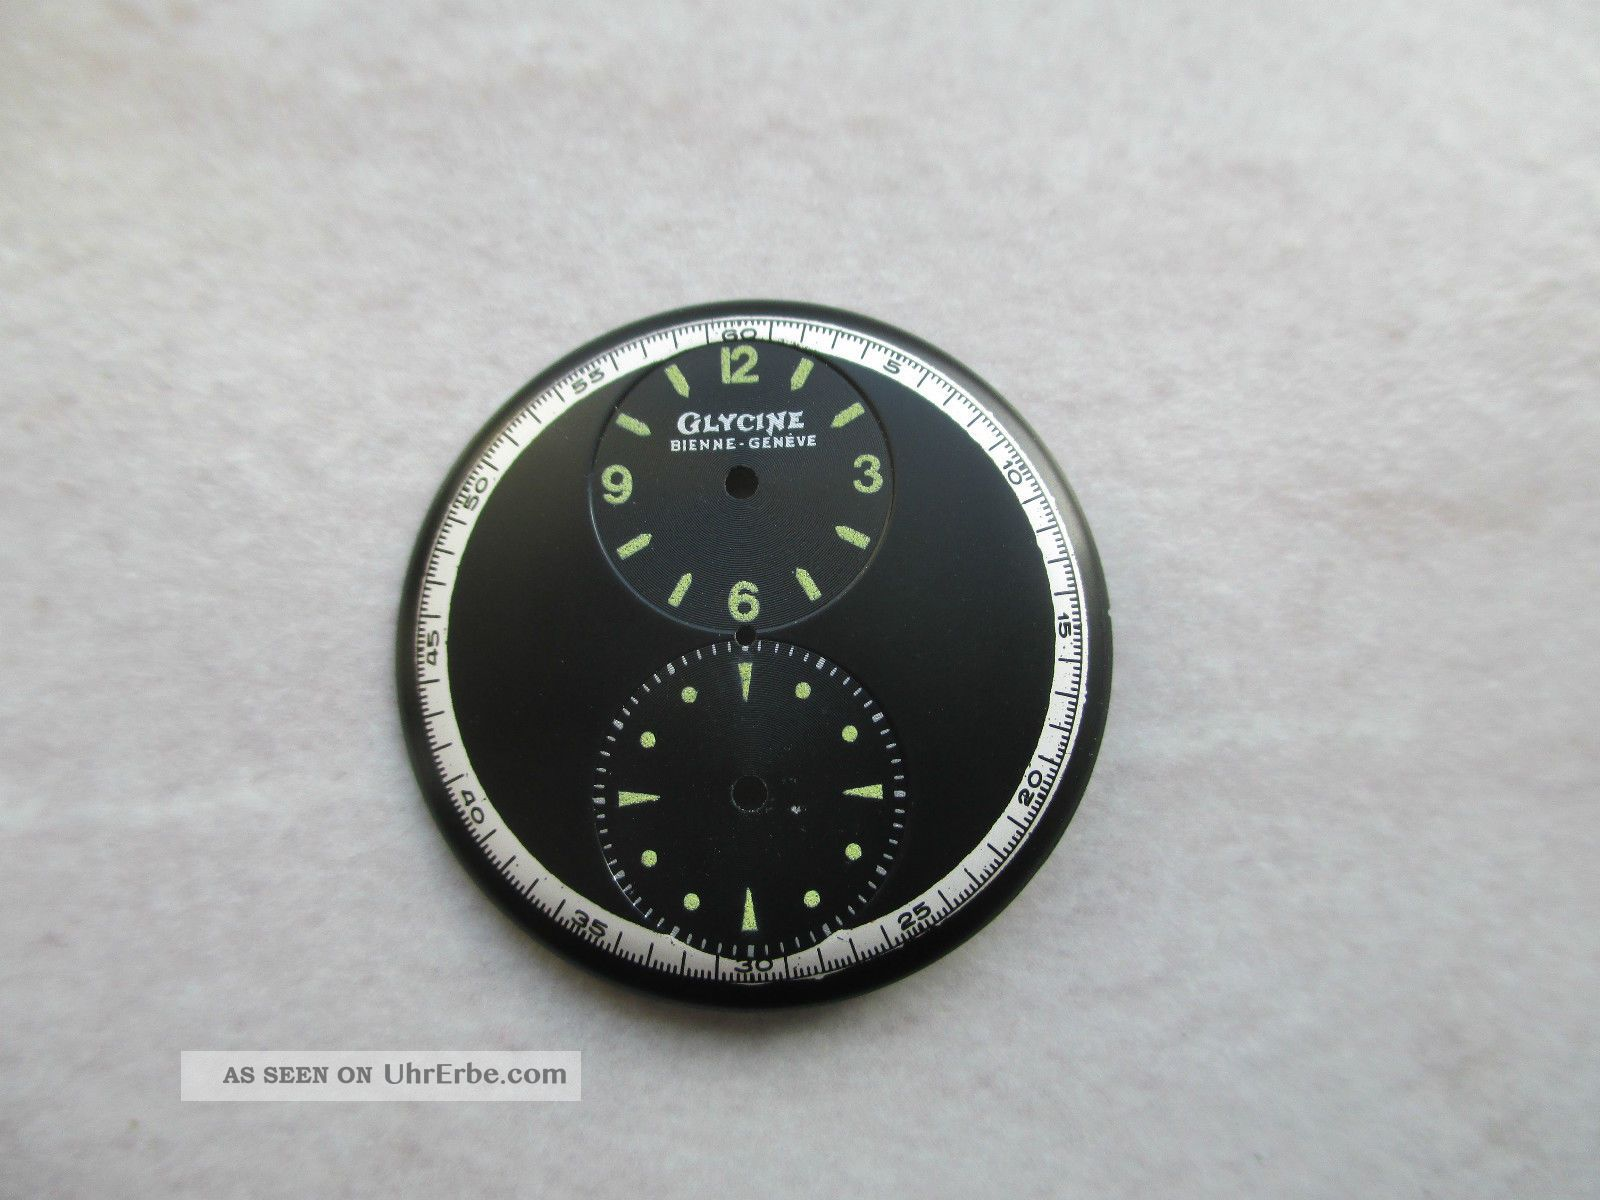 Zifferblatt Cadran Dial Glycine,  Regulator Doctors,  Duo Dial Armbanduhren Bild